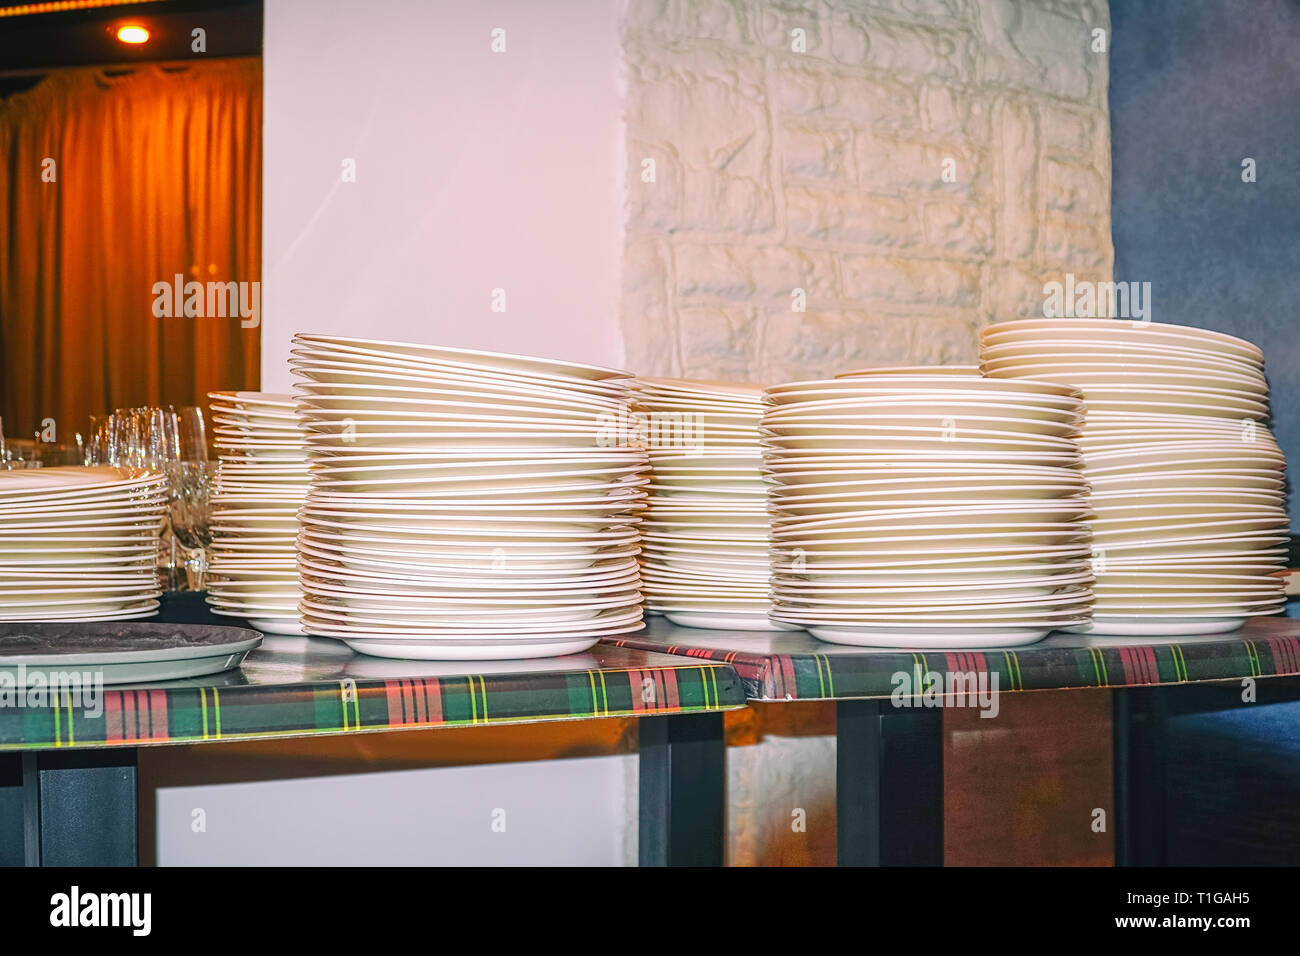 Clean white plates stacked on table - Stock Image